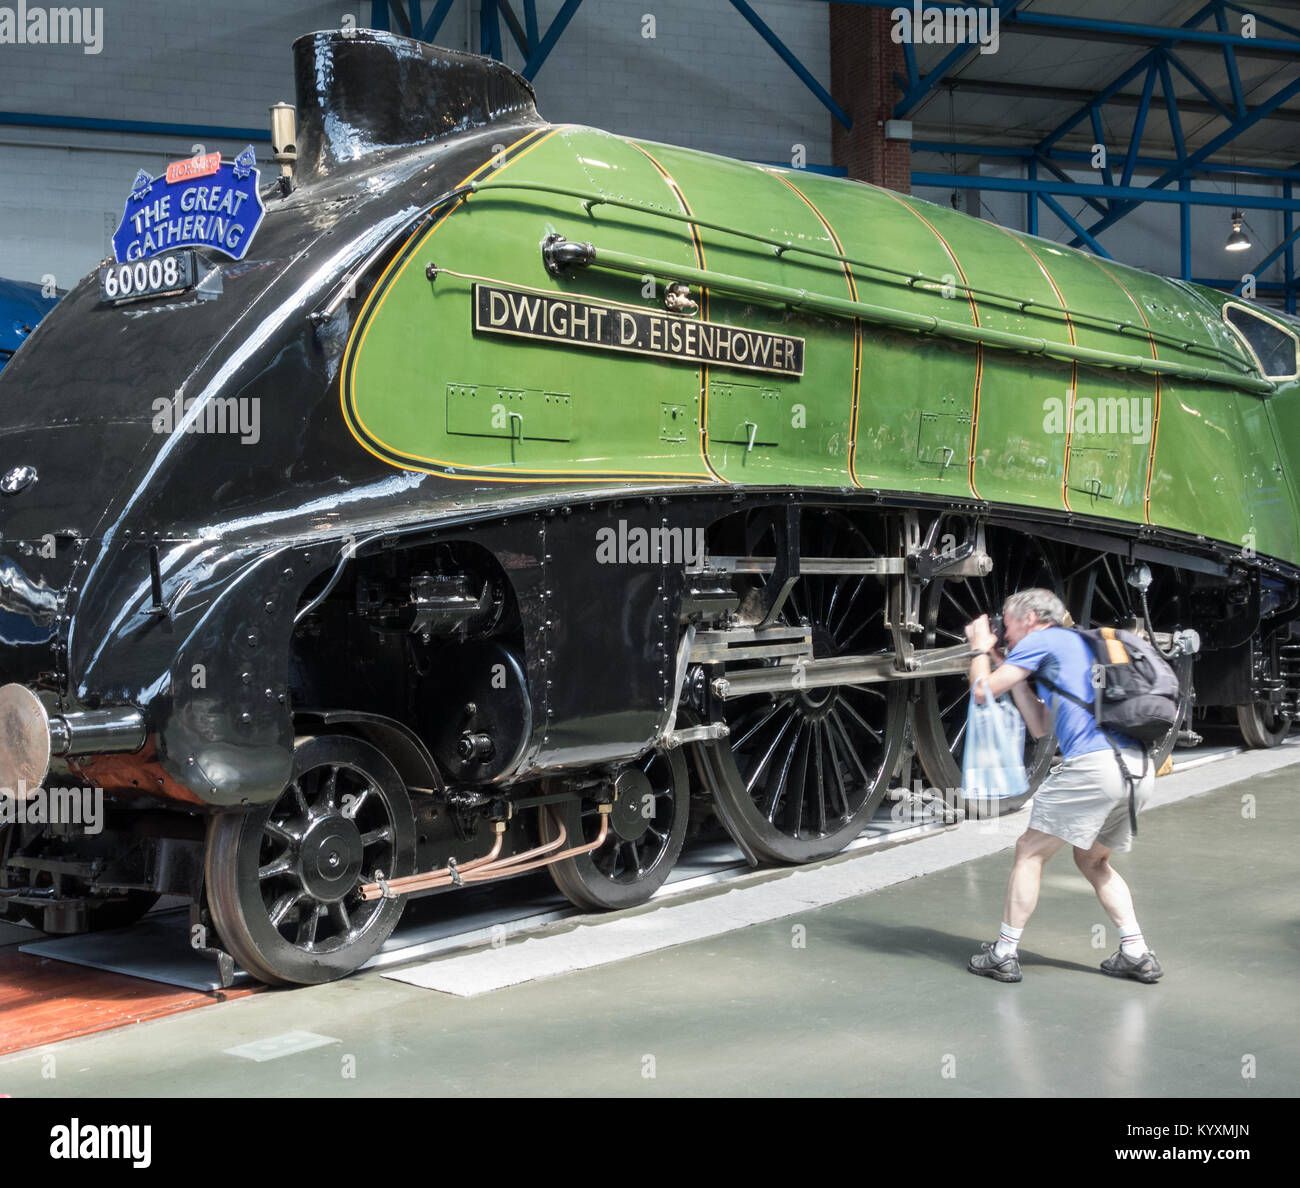 The National Railway Museum in York, Yorkshire, England. UK - Stock Image